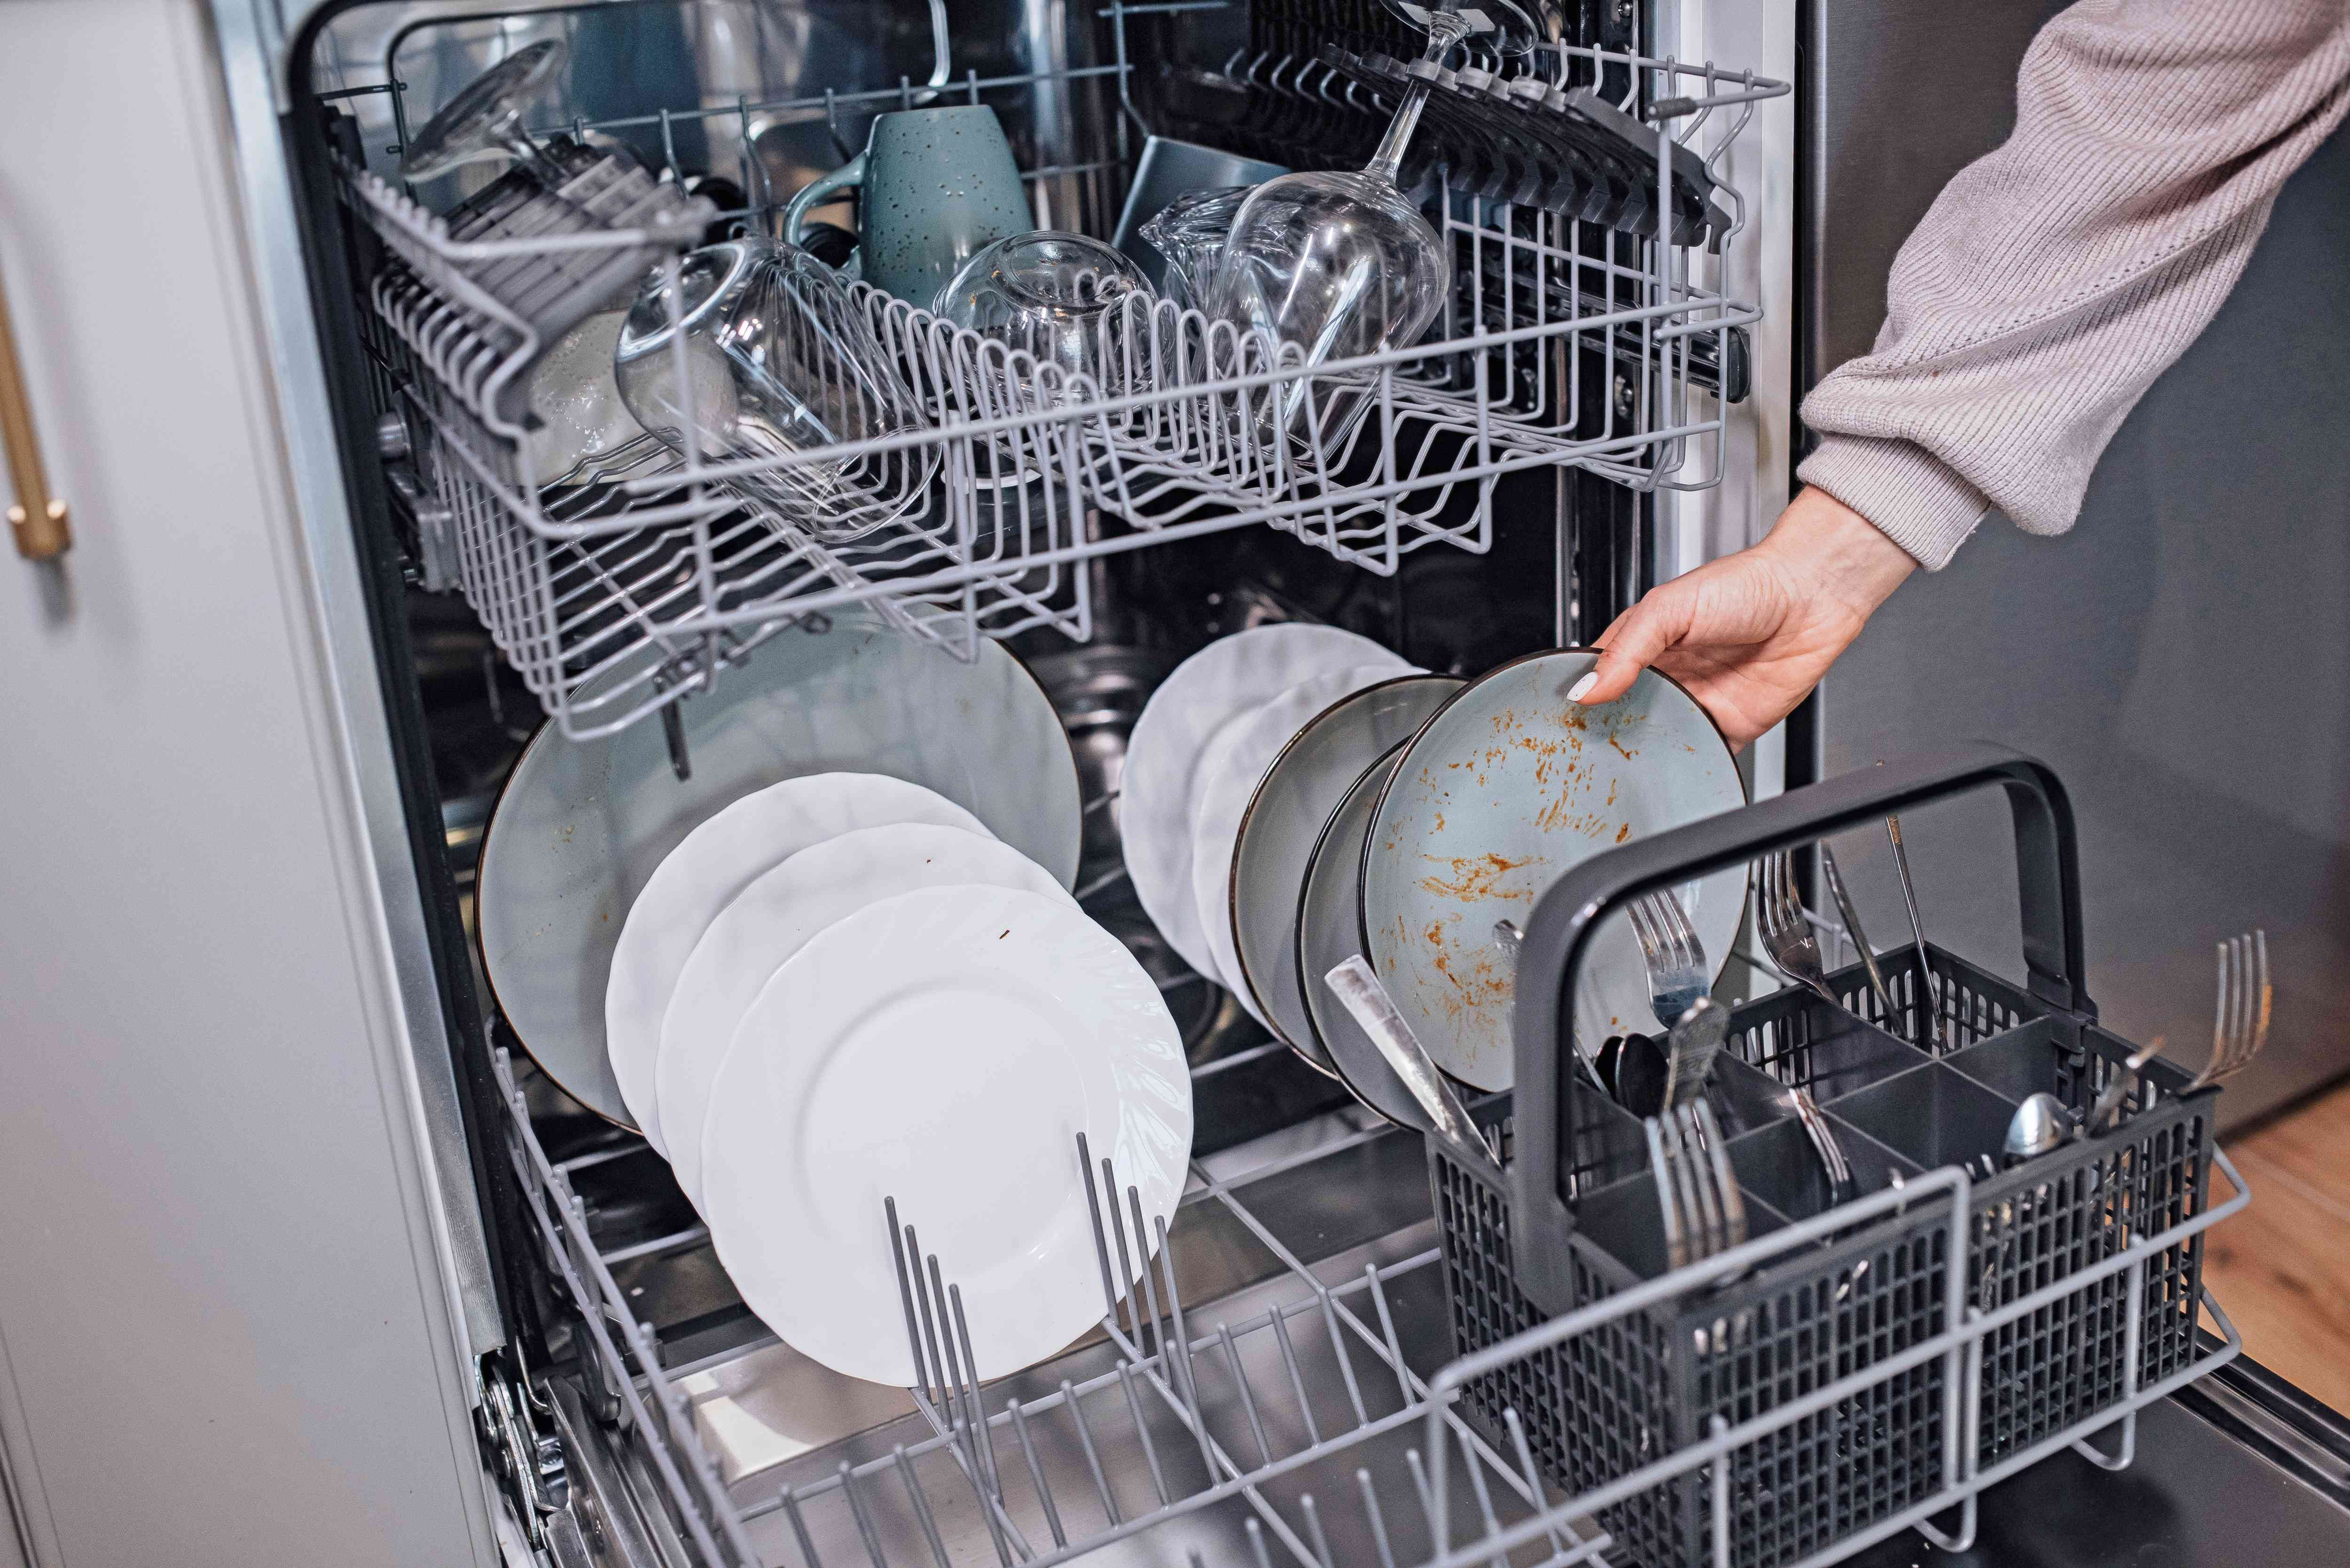 partially-filled dishwasher